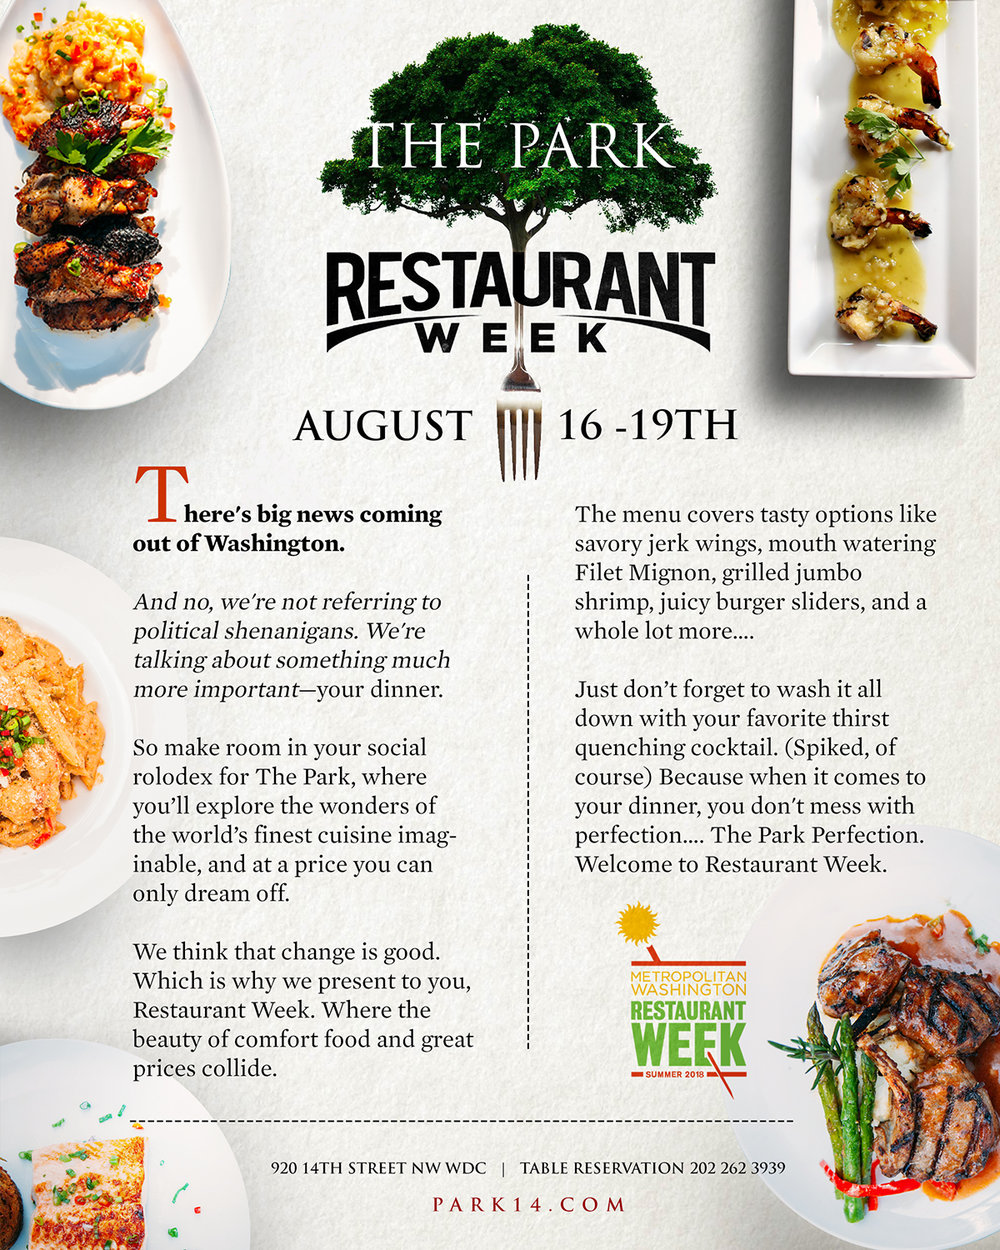 The Park Restaurant Week ADV.jpg